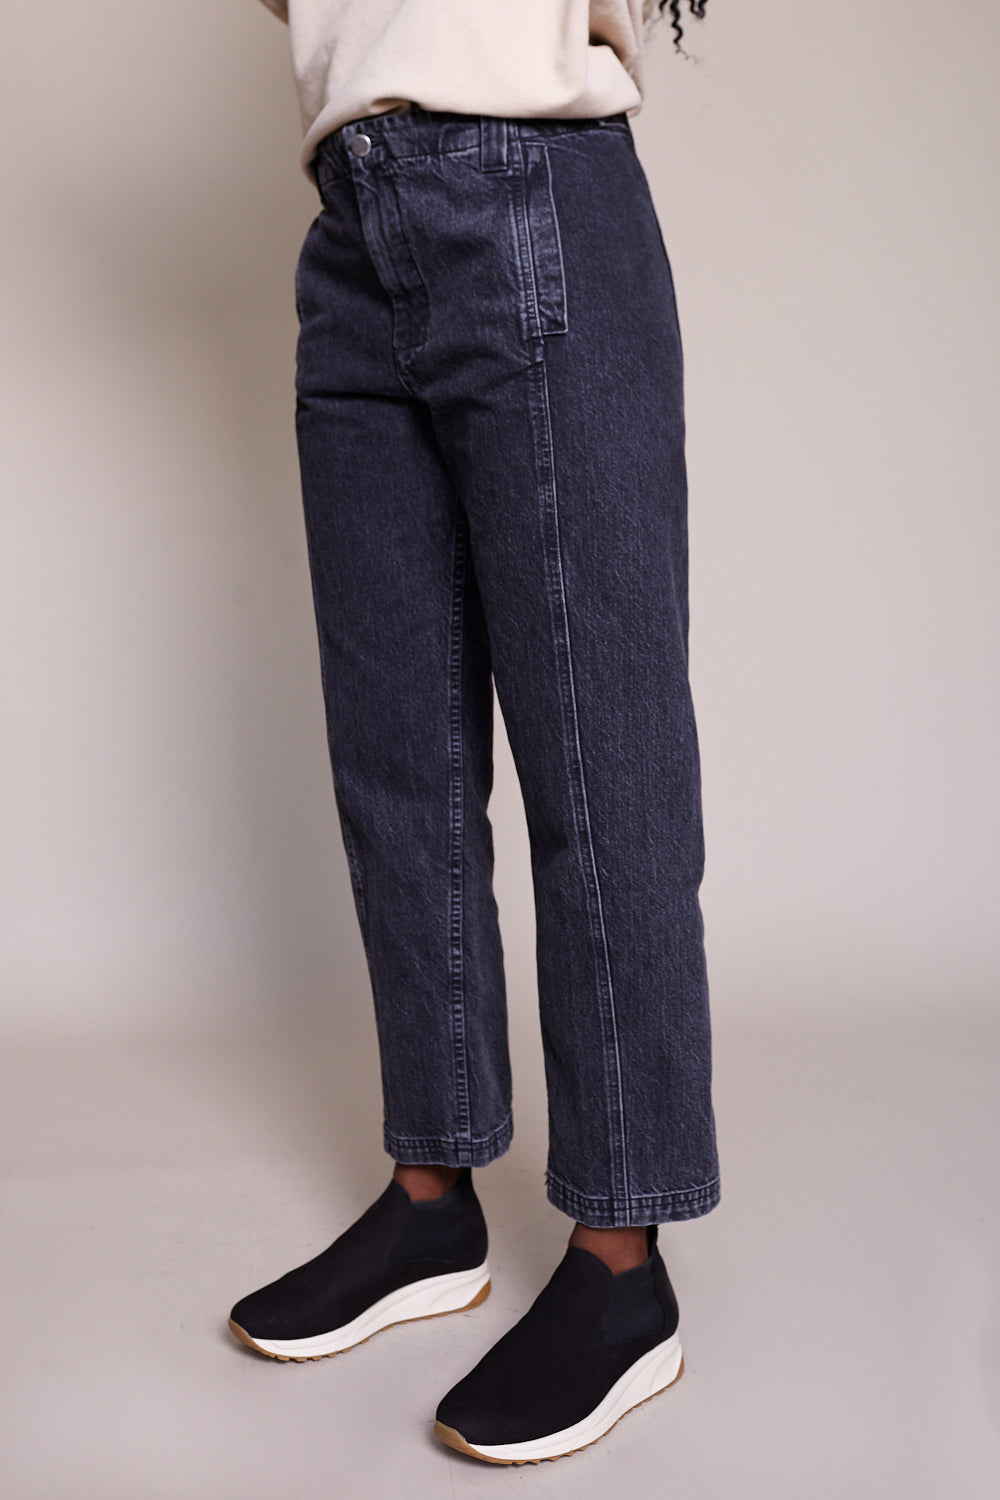 Steer Pant in Washed Black